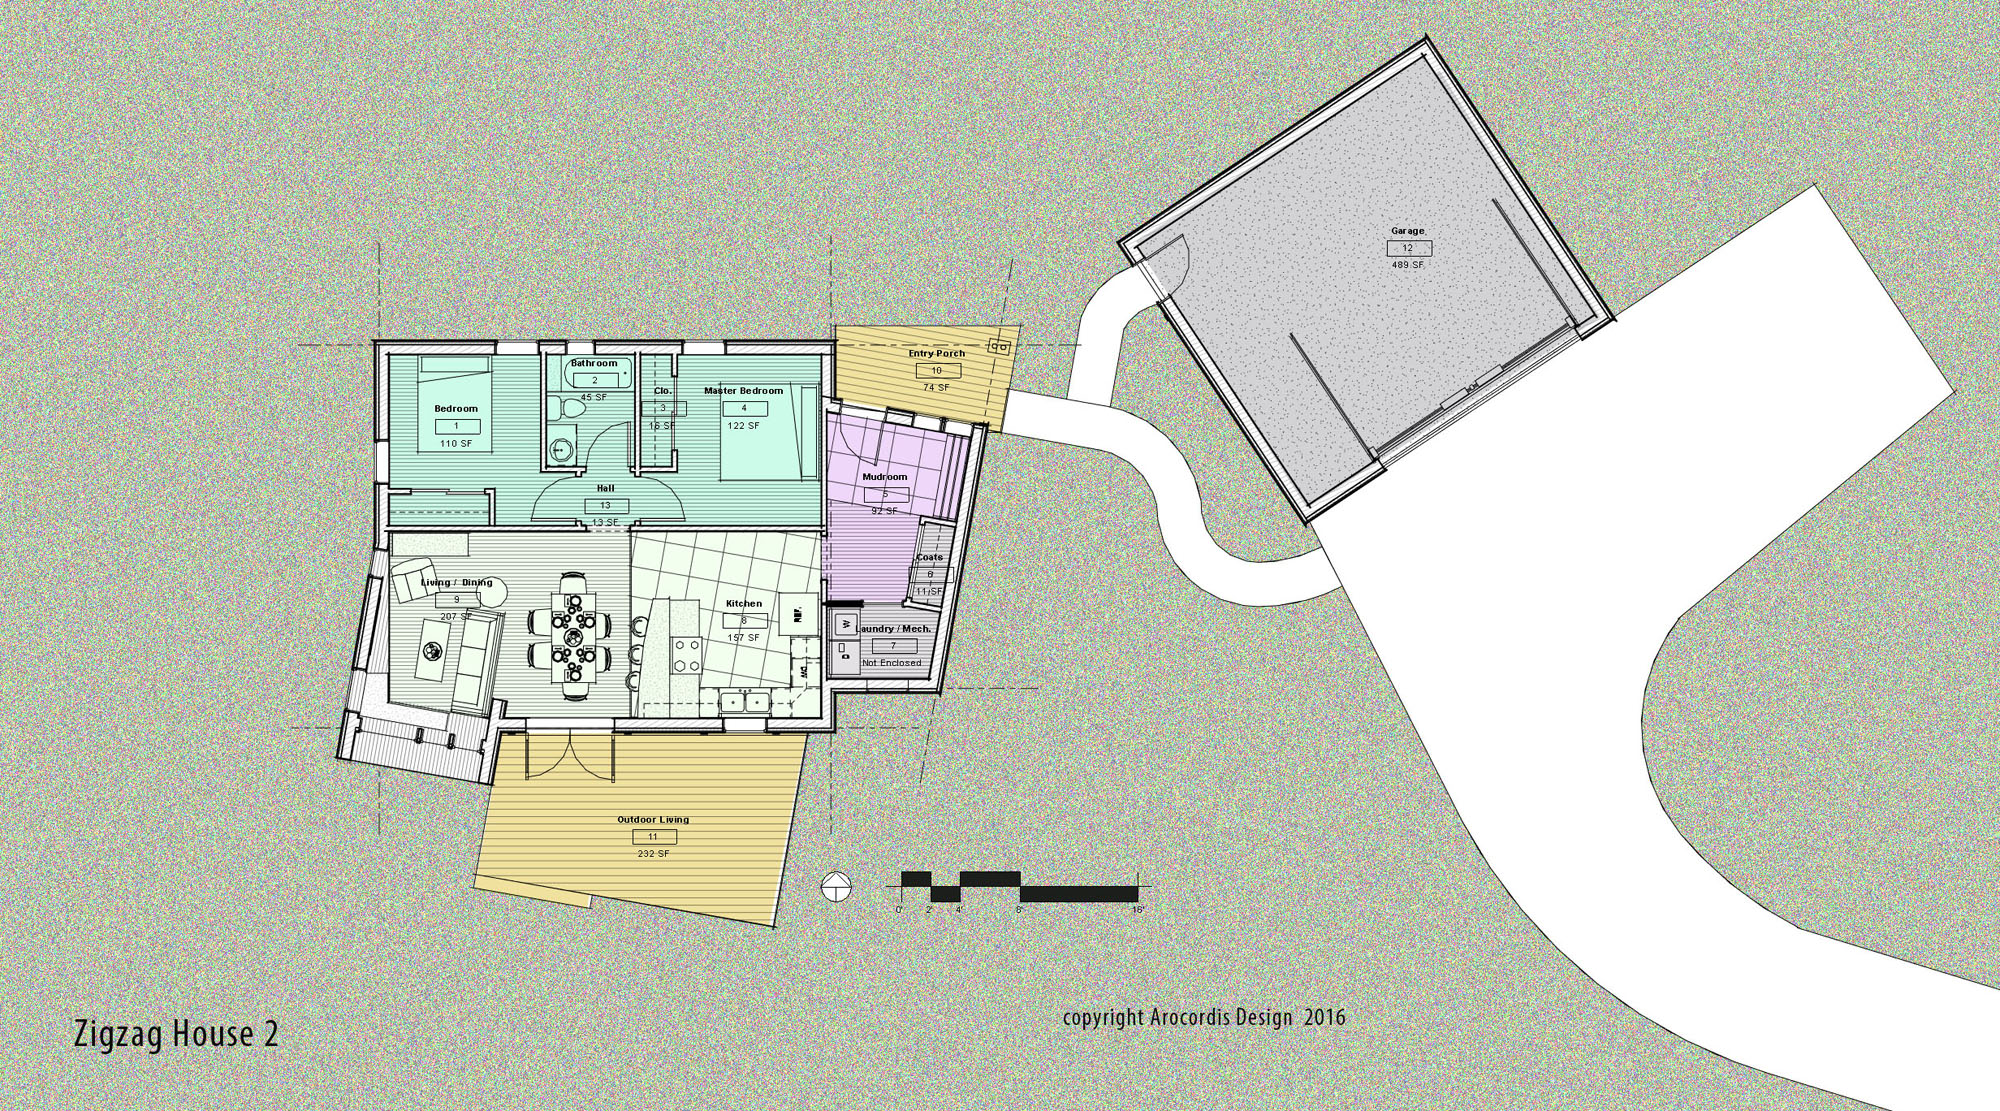 A concept site and ground floor plan - Single level living